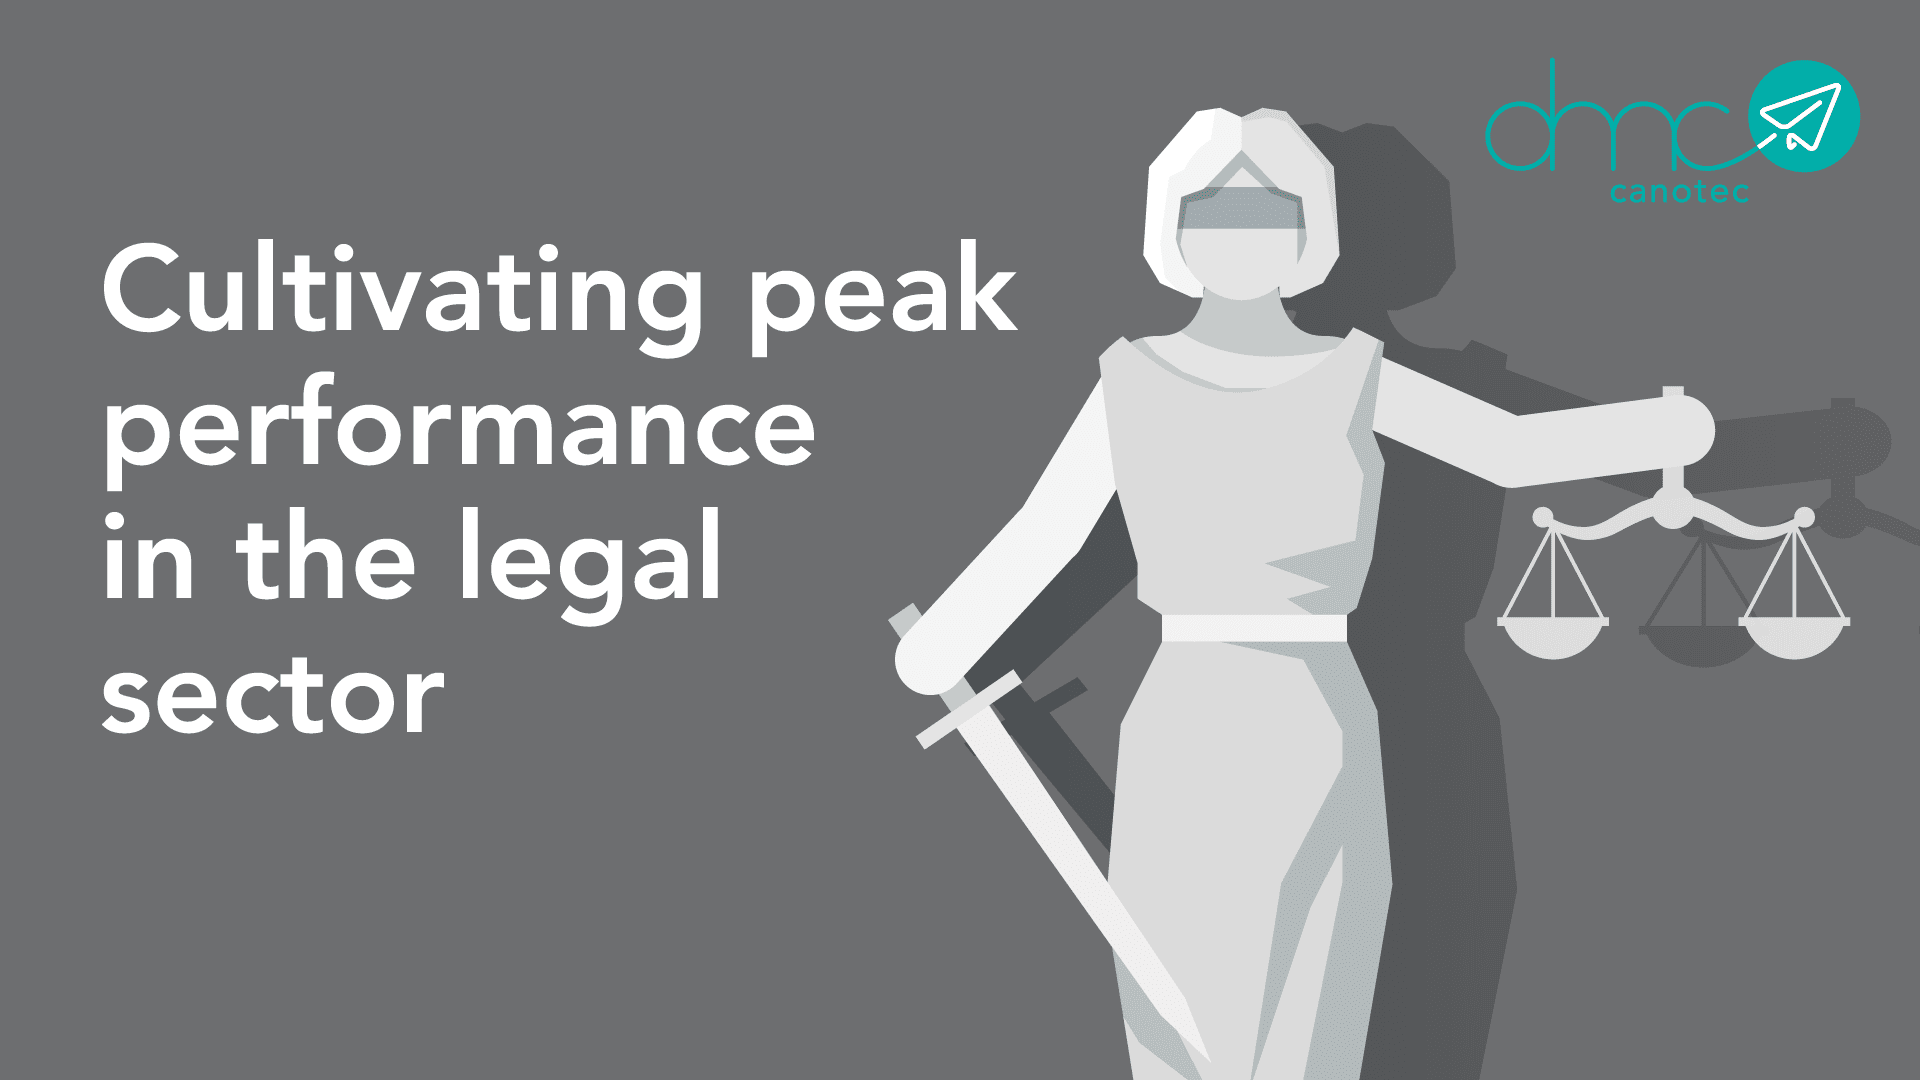 Cultivating peak performance in the legal sector